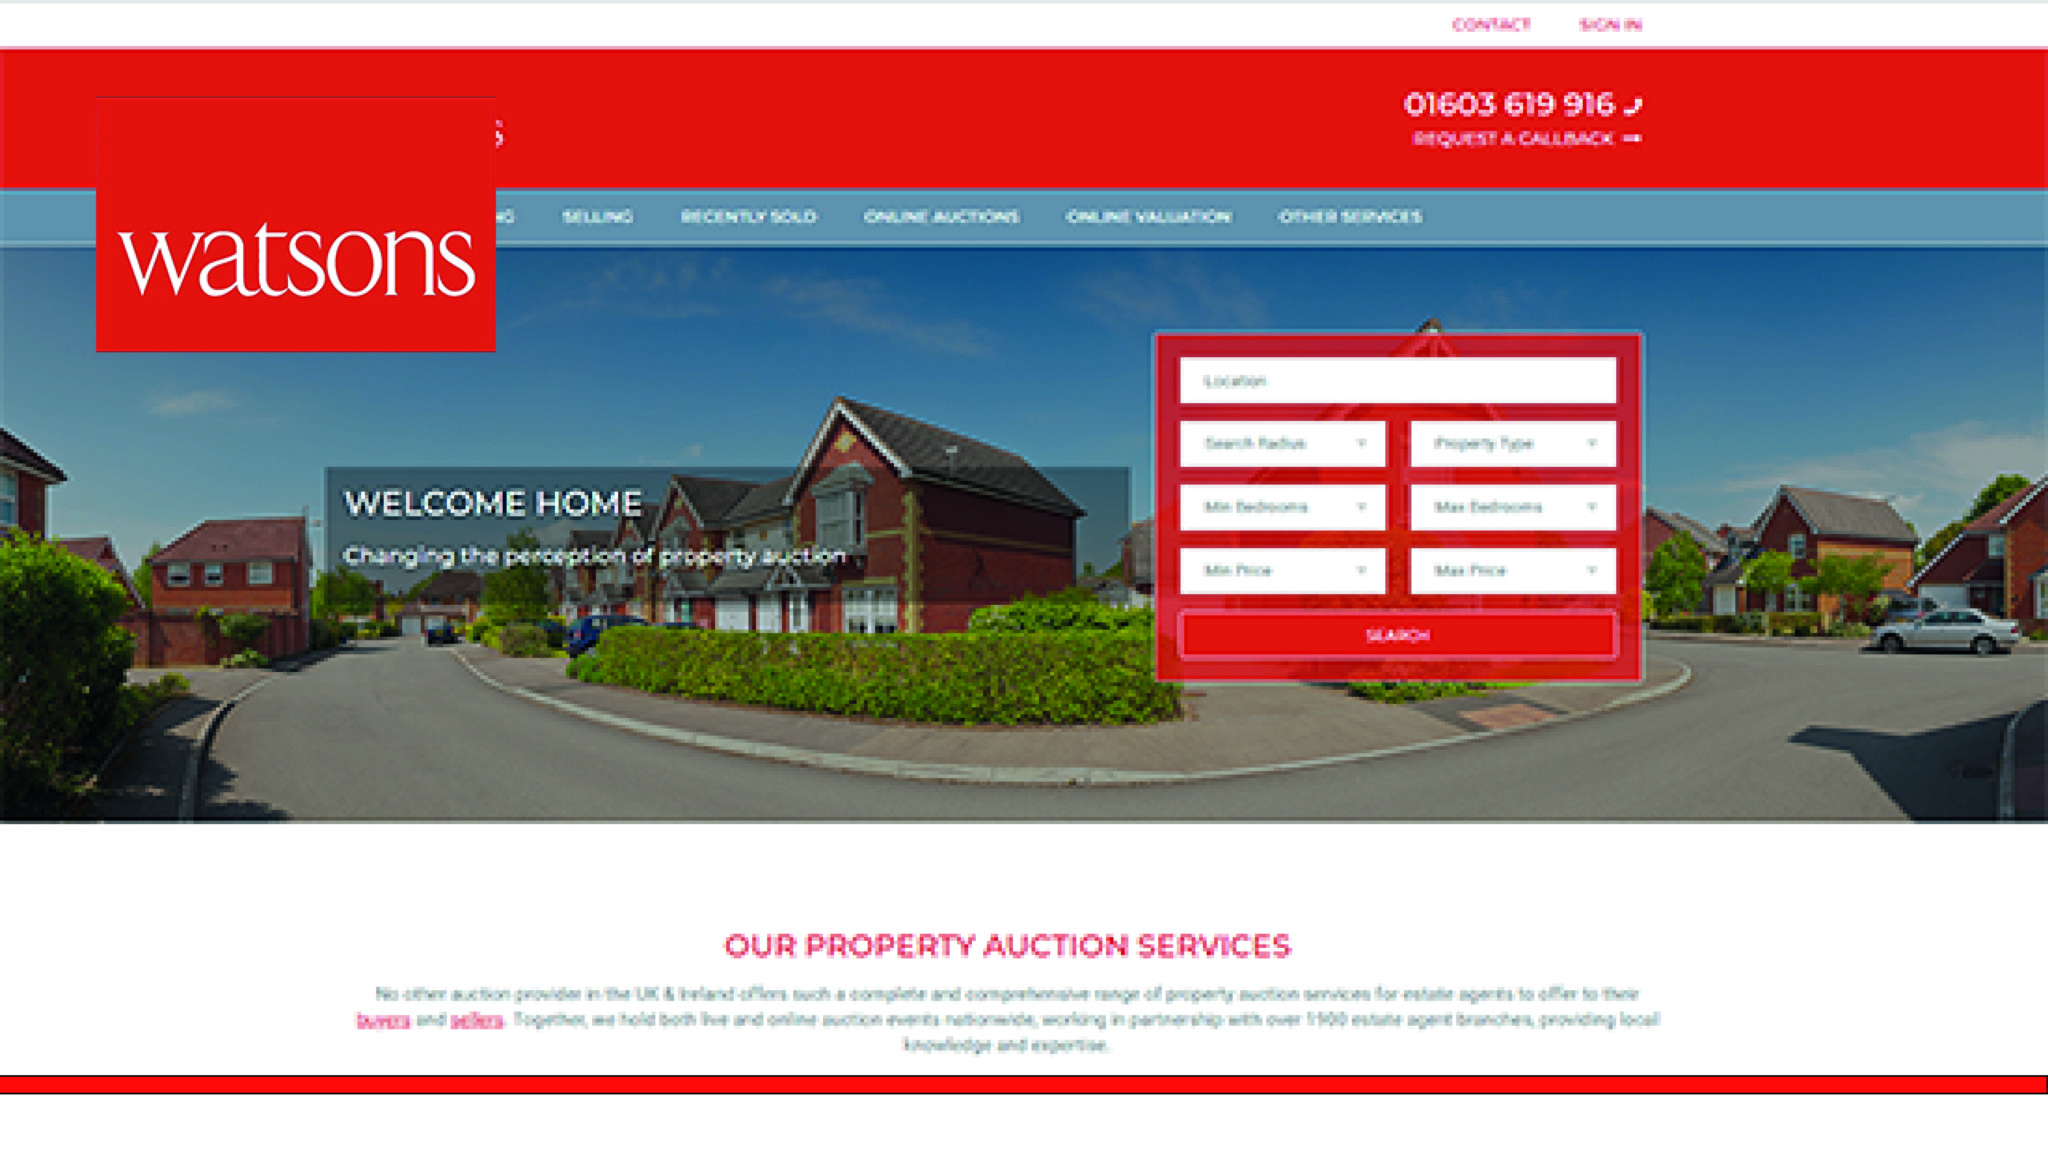 Watsons Auction Service